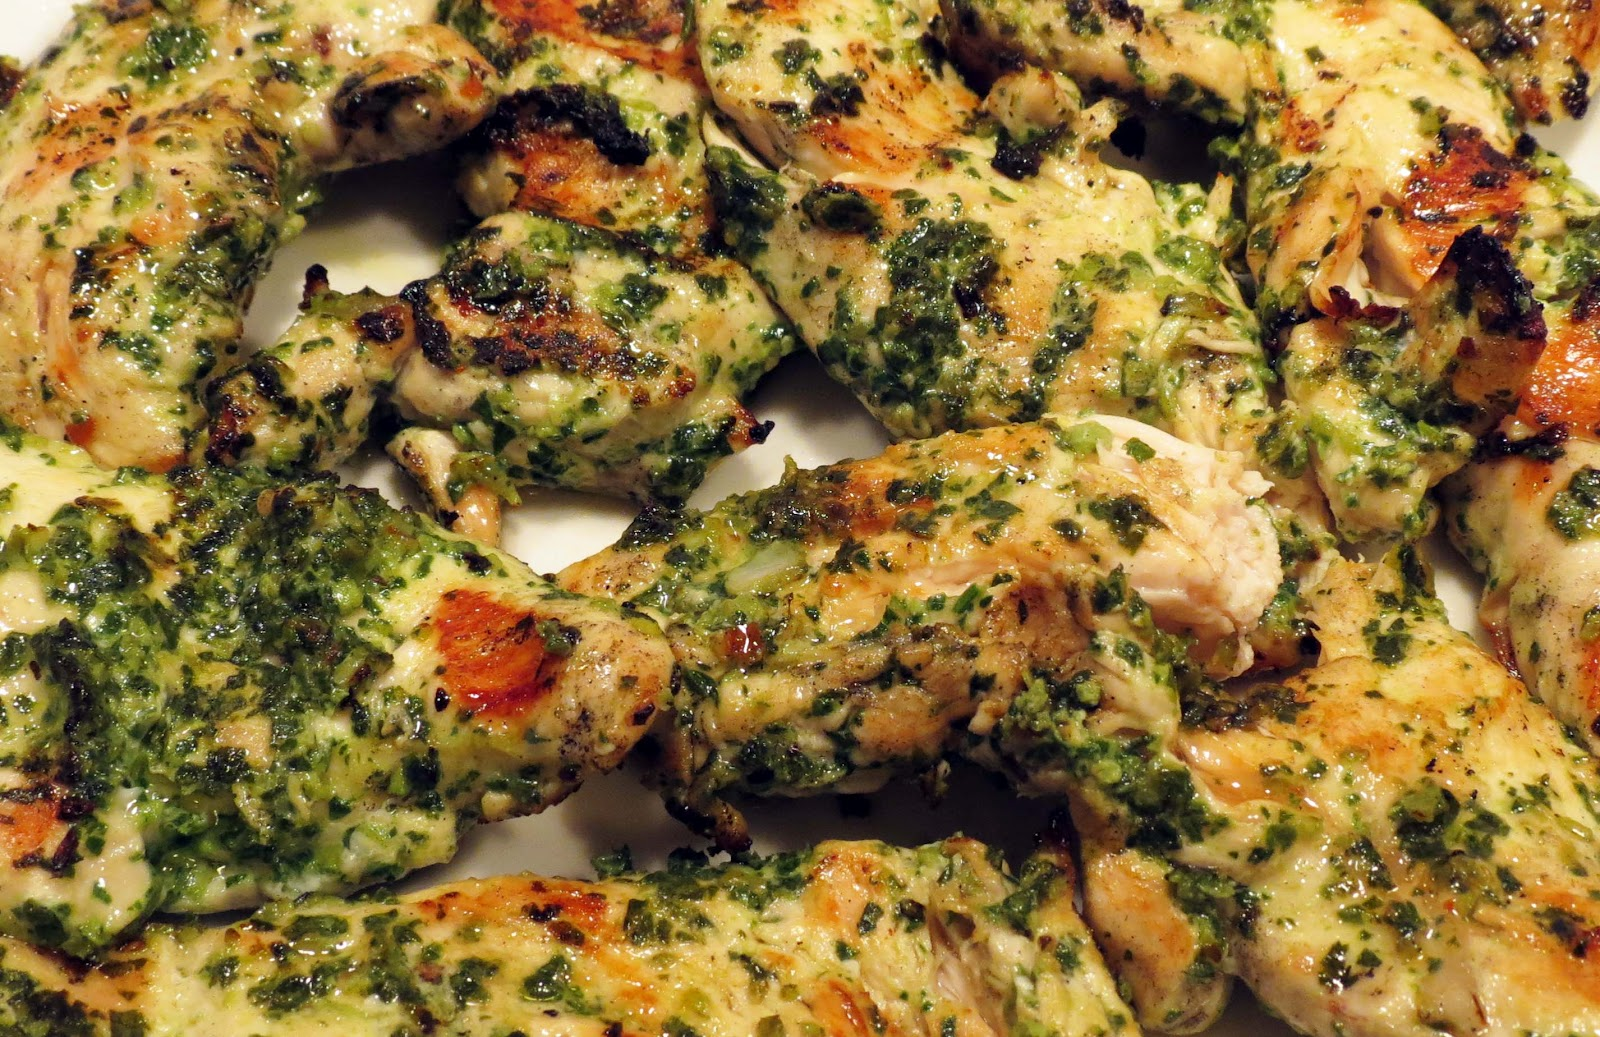 Grilled Chicken Chimichurri Recipes — Dishmaps